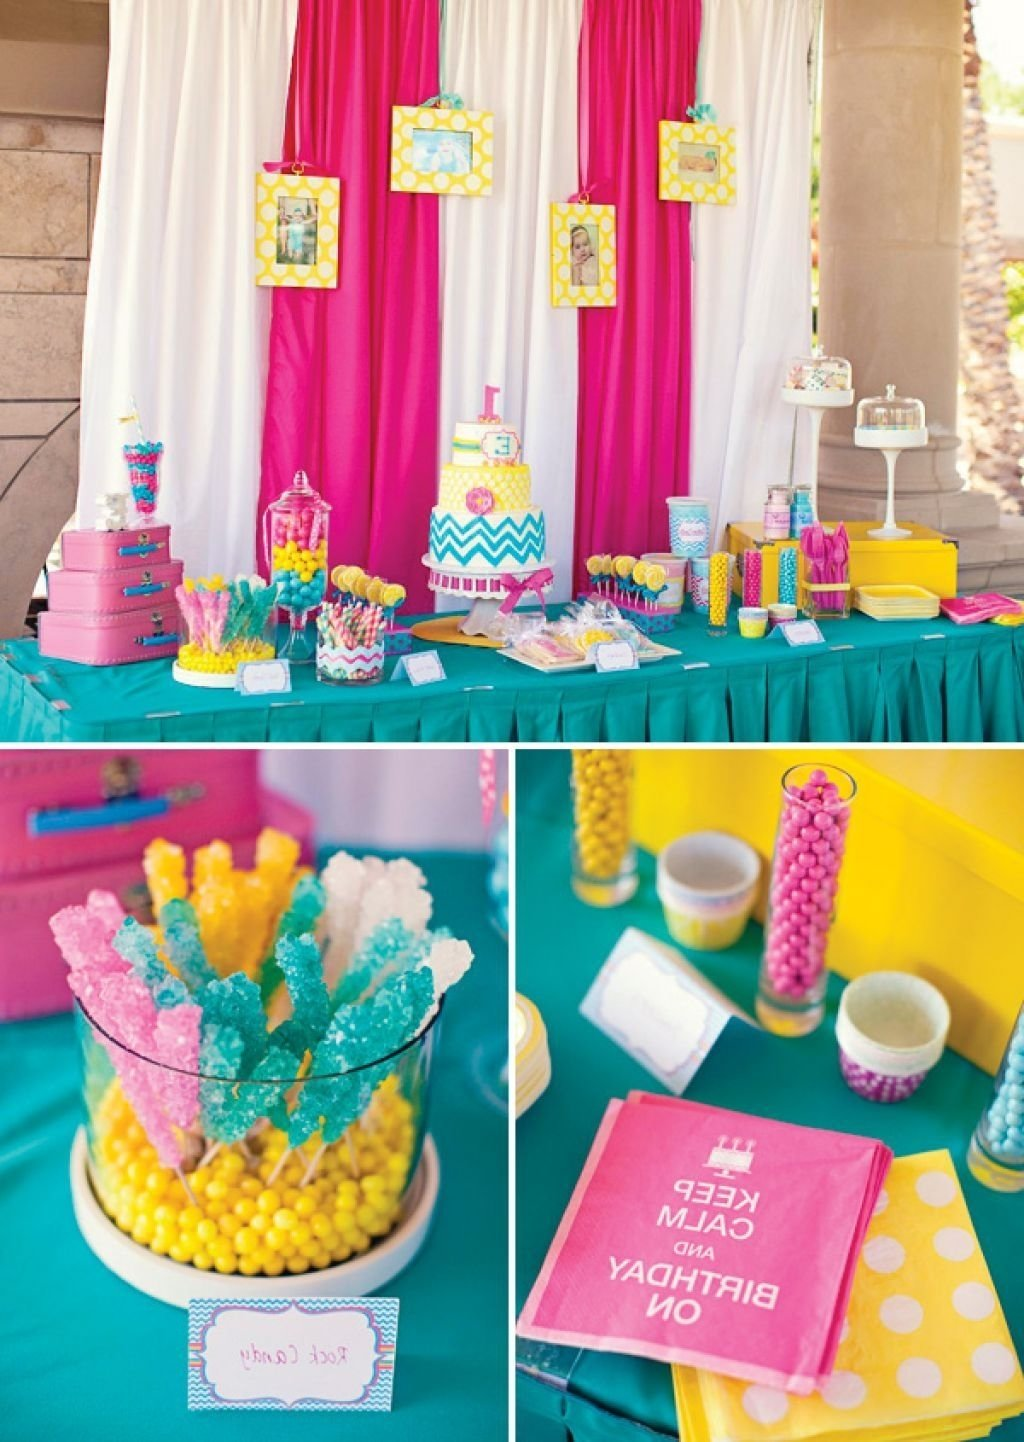 10 Trendy 7 Year Old Girl Birthday Party Ideas outdoor party decorations google search madeline pinterest 32 2021